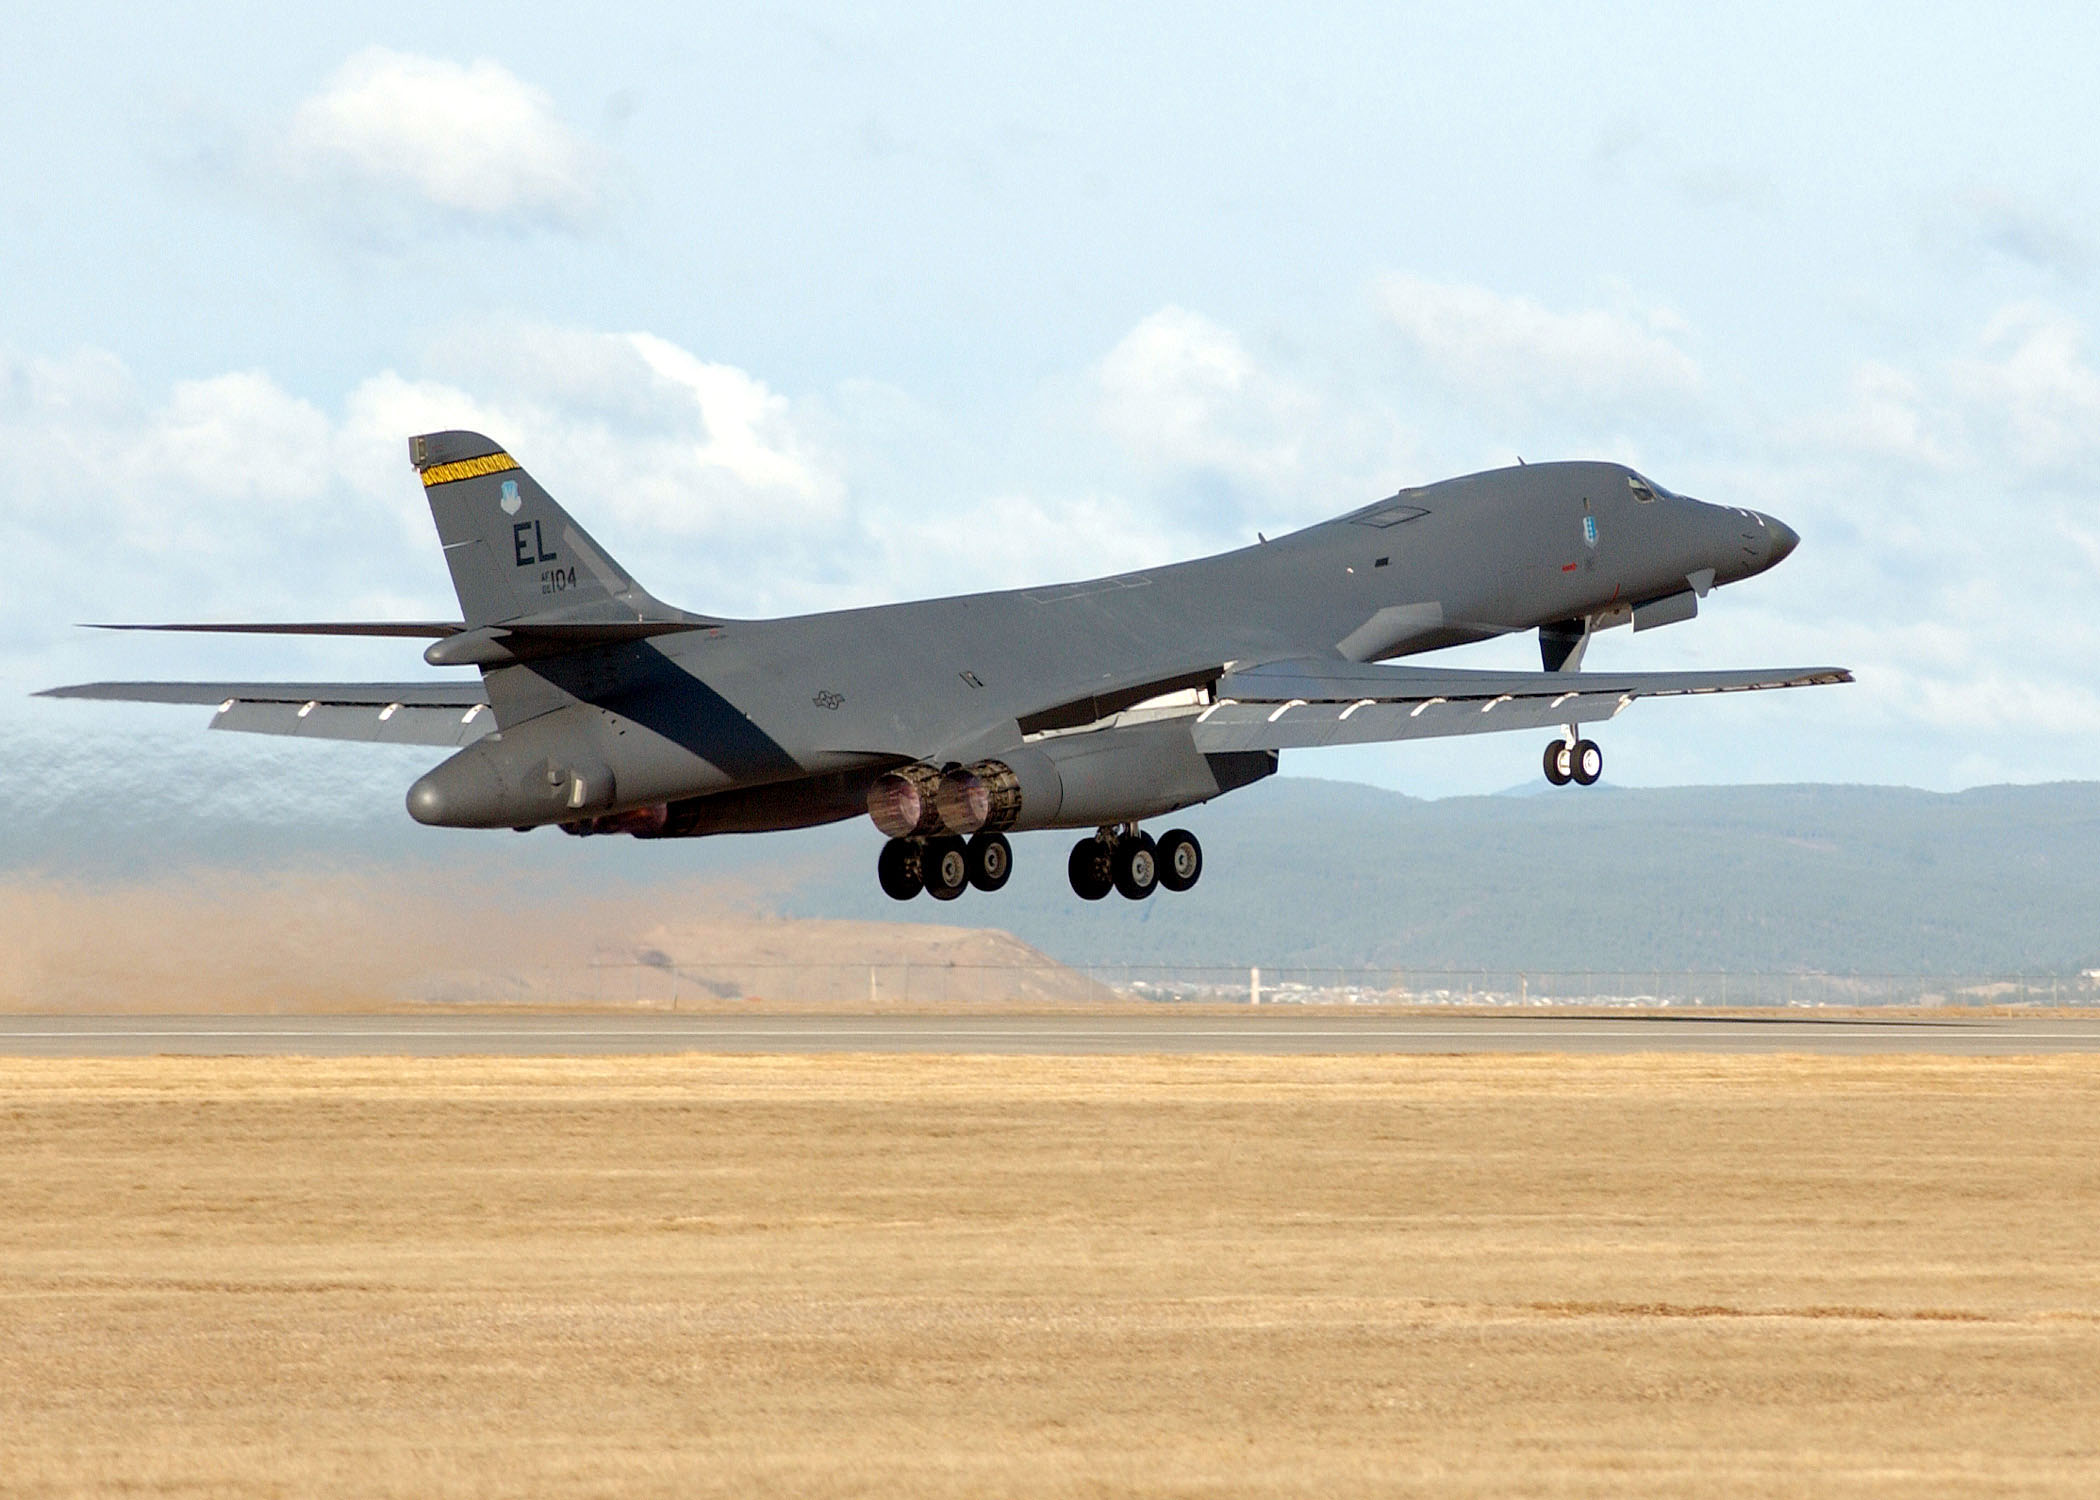 US bomber aircraft catches fire after landing at airbase in